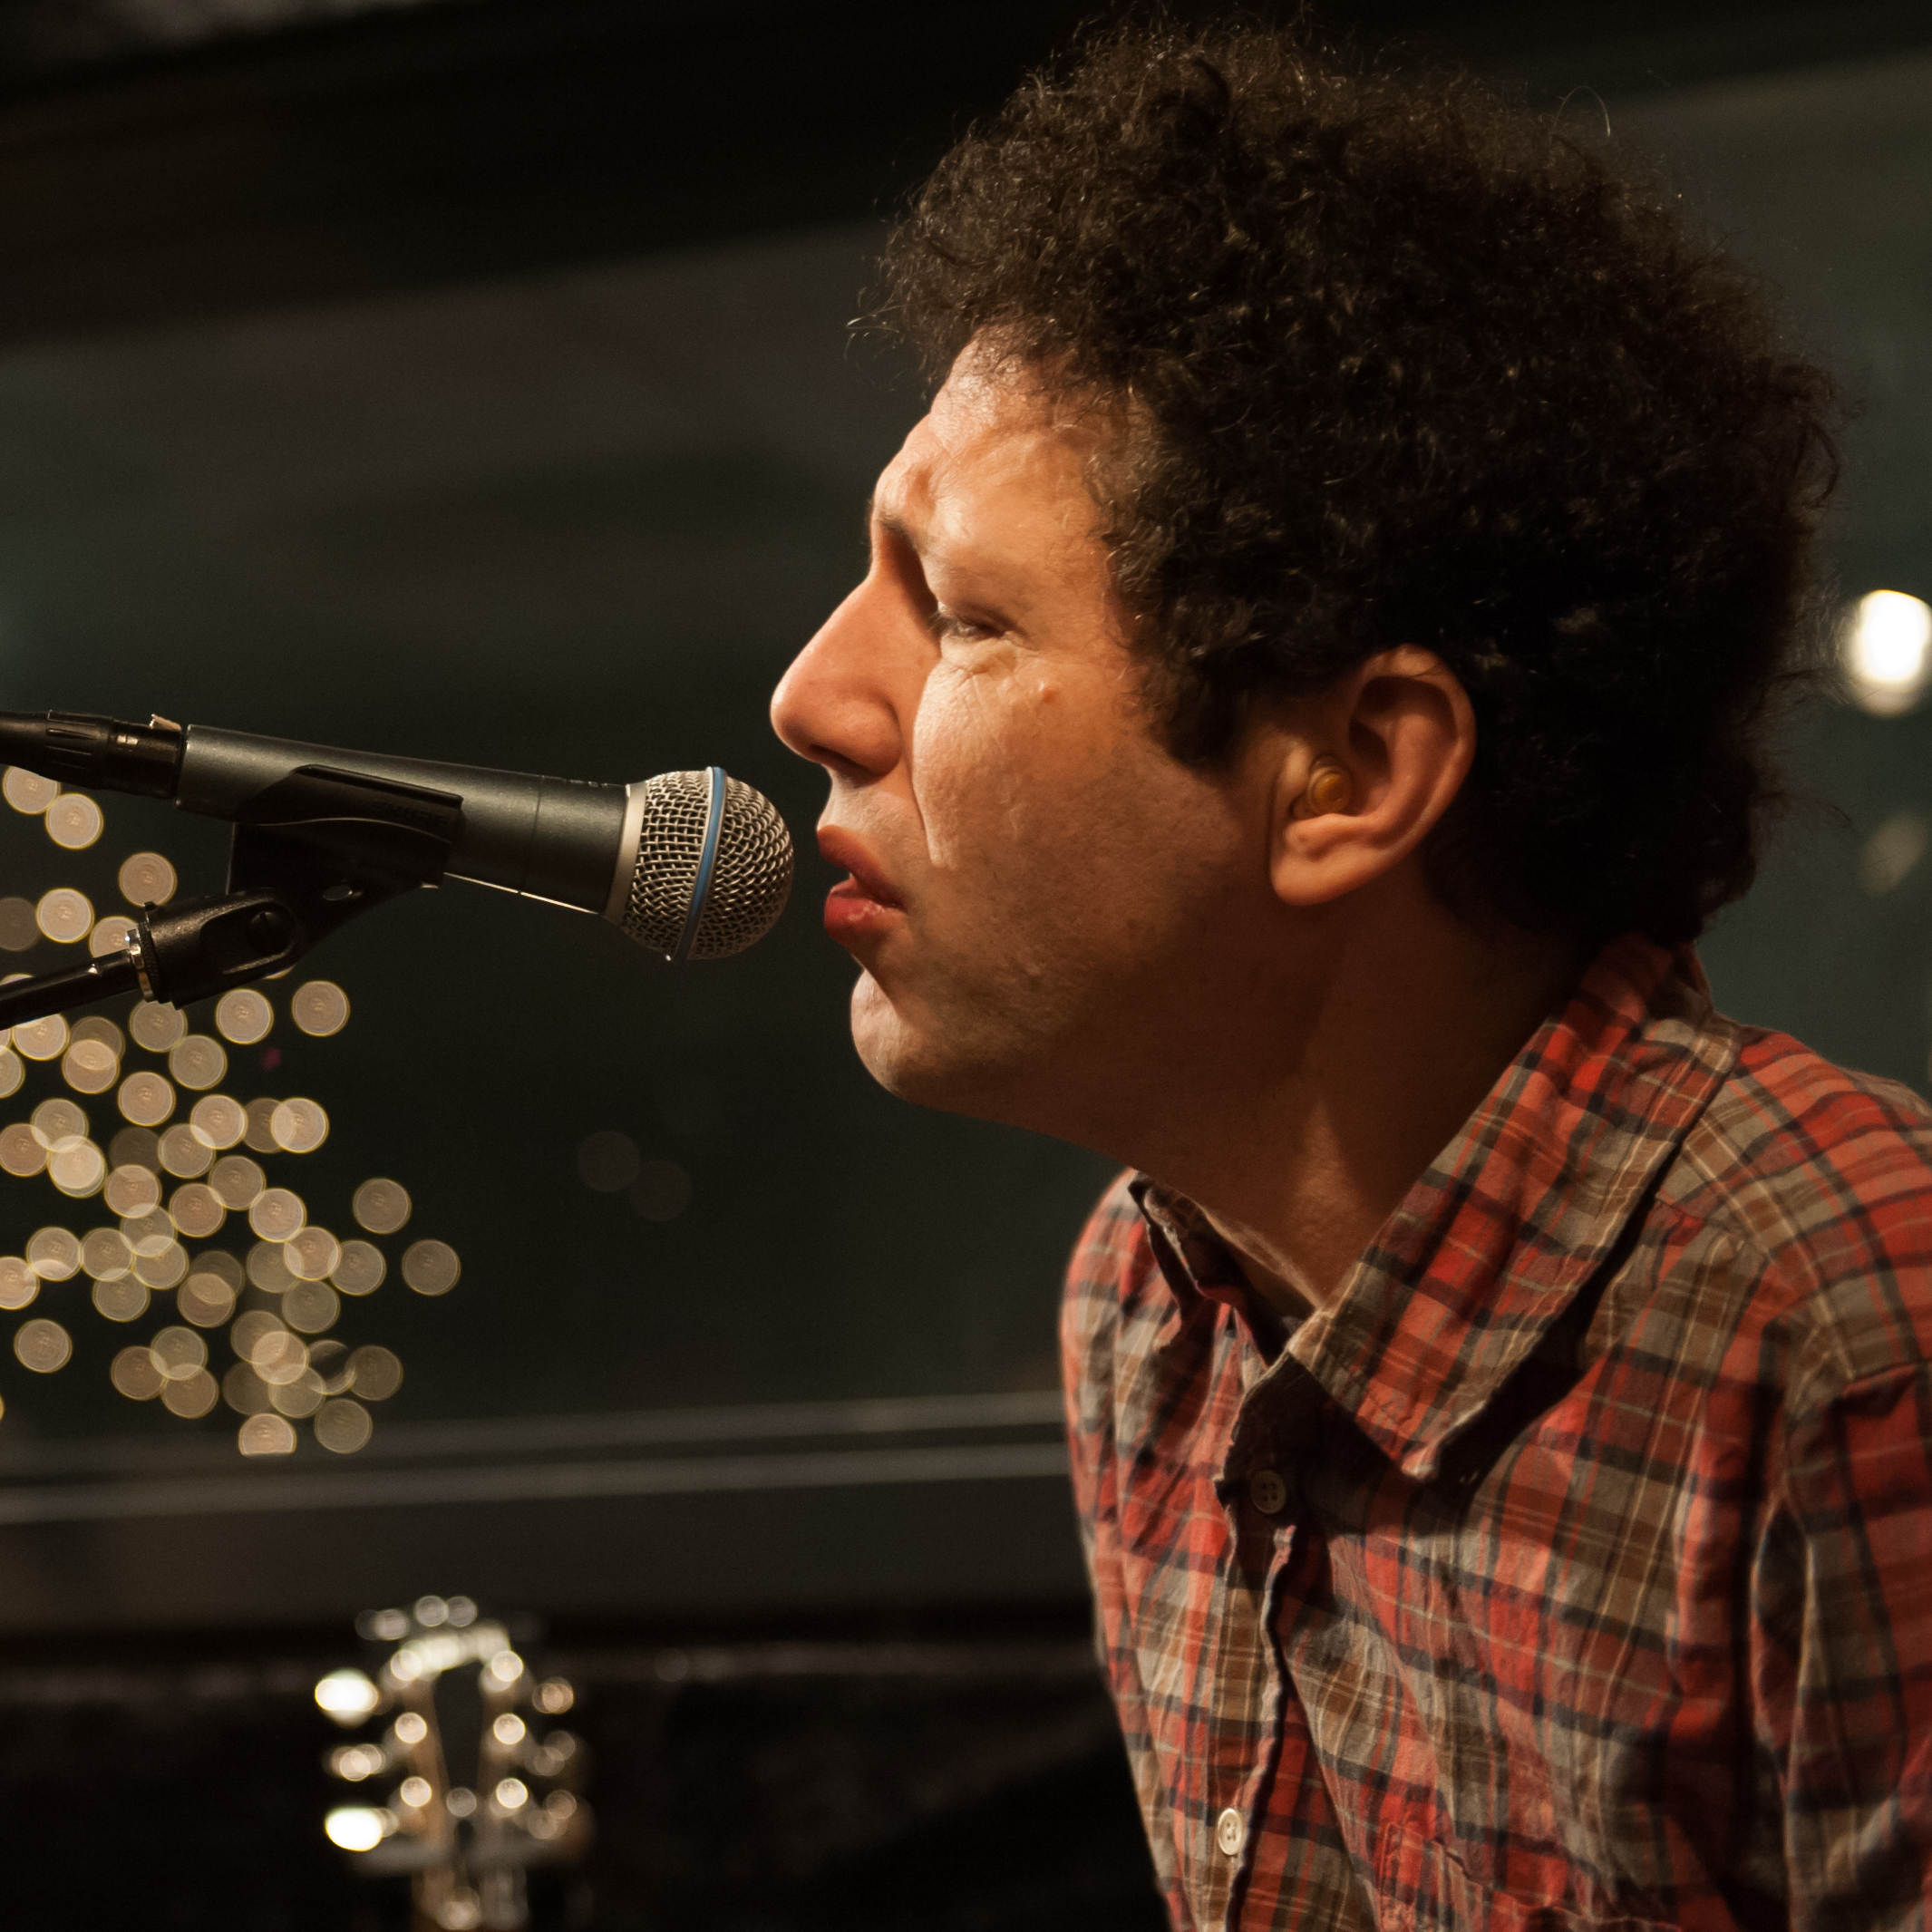 Ira Kaplan of Yo La Tengo performs live at KEXP's studios in Seattle.